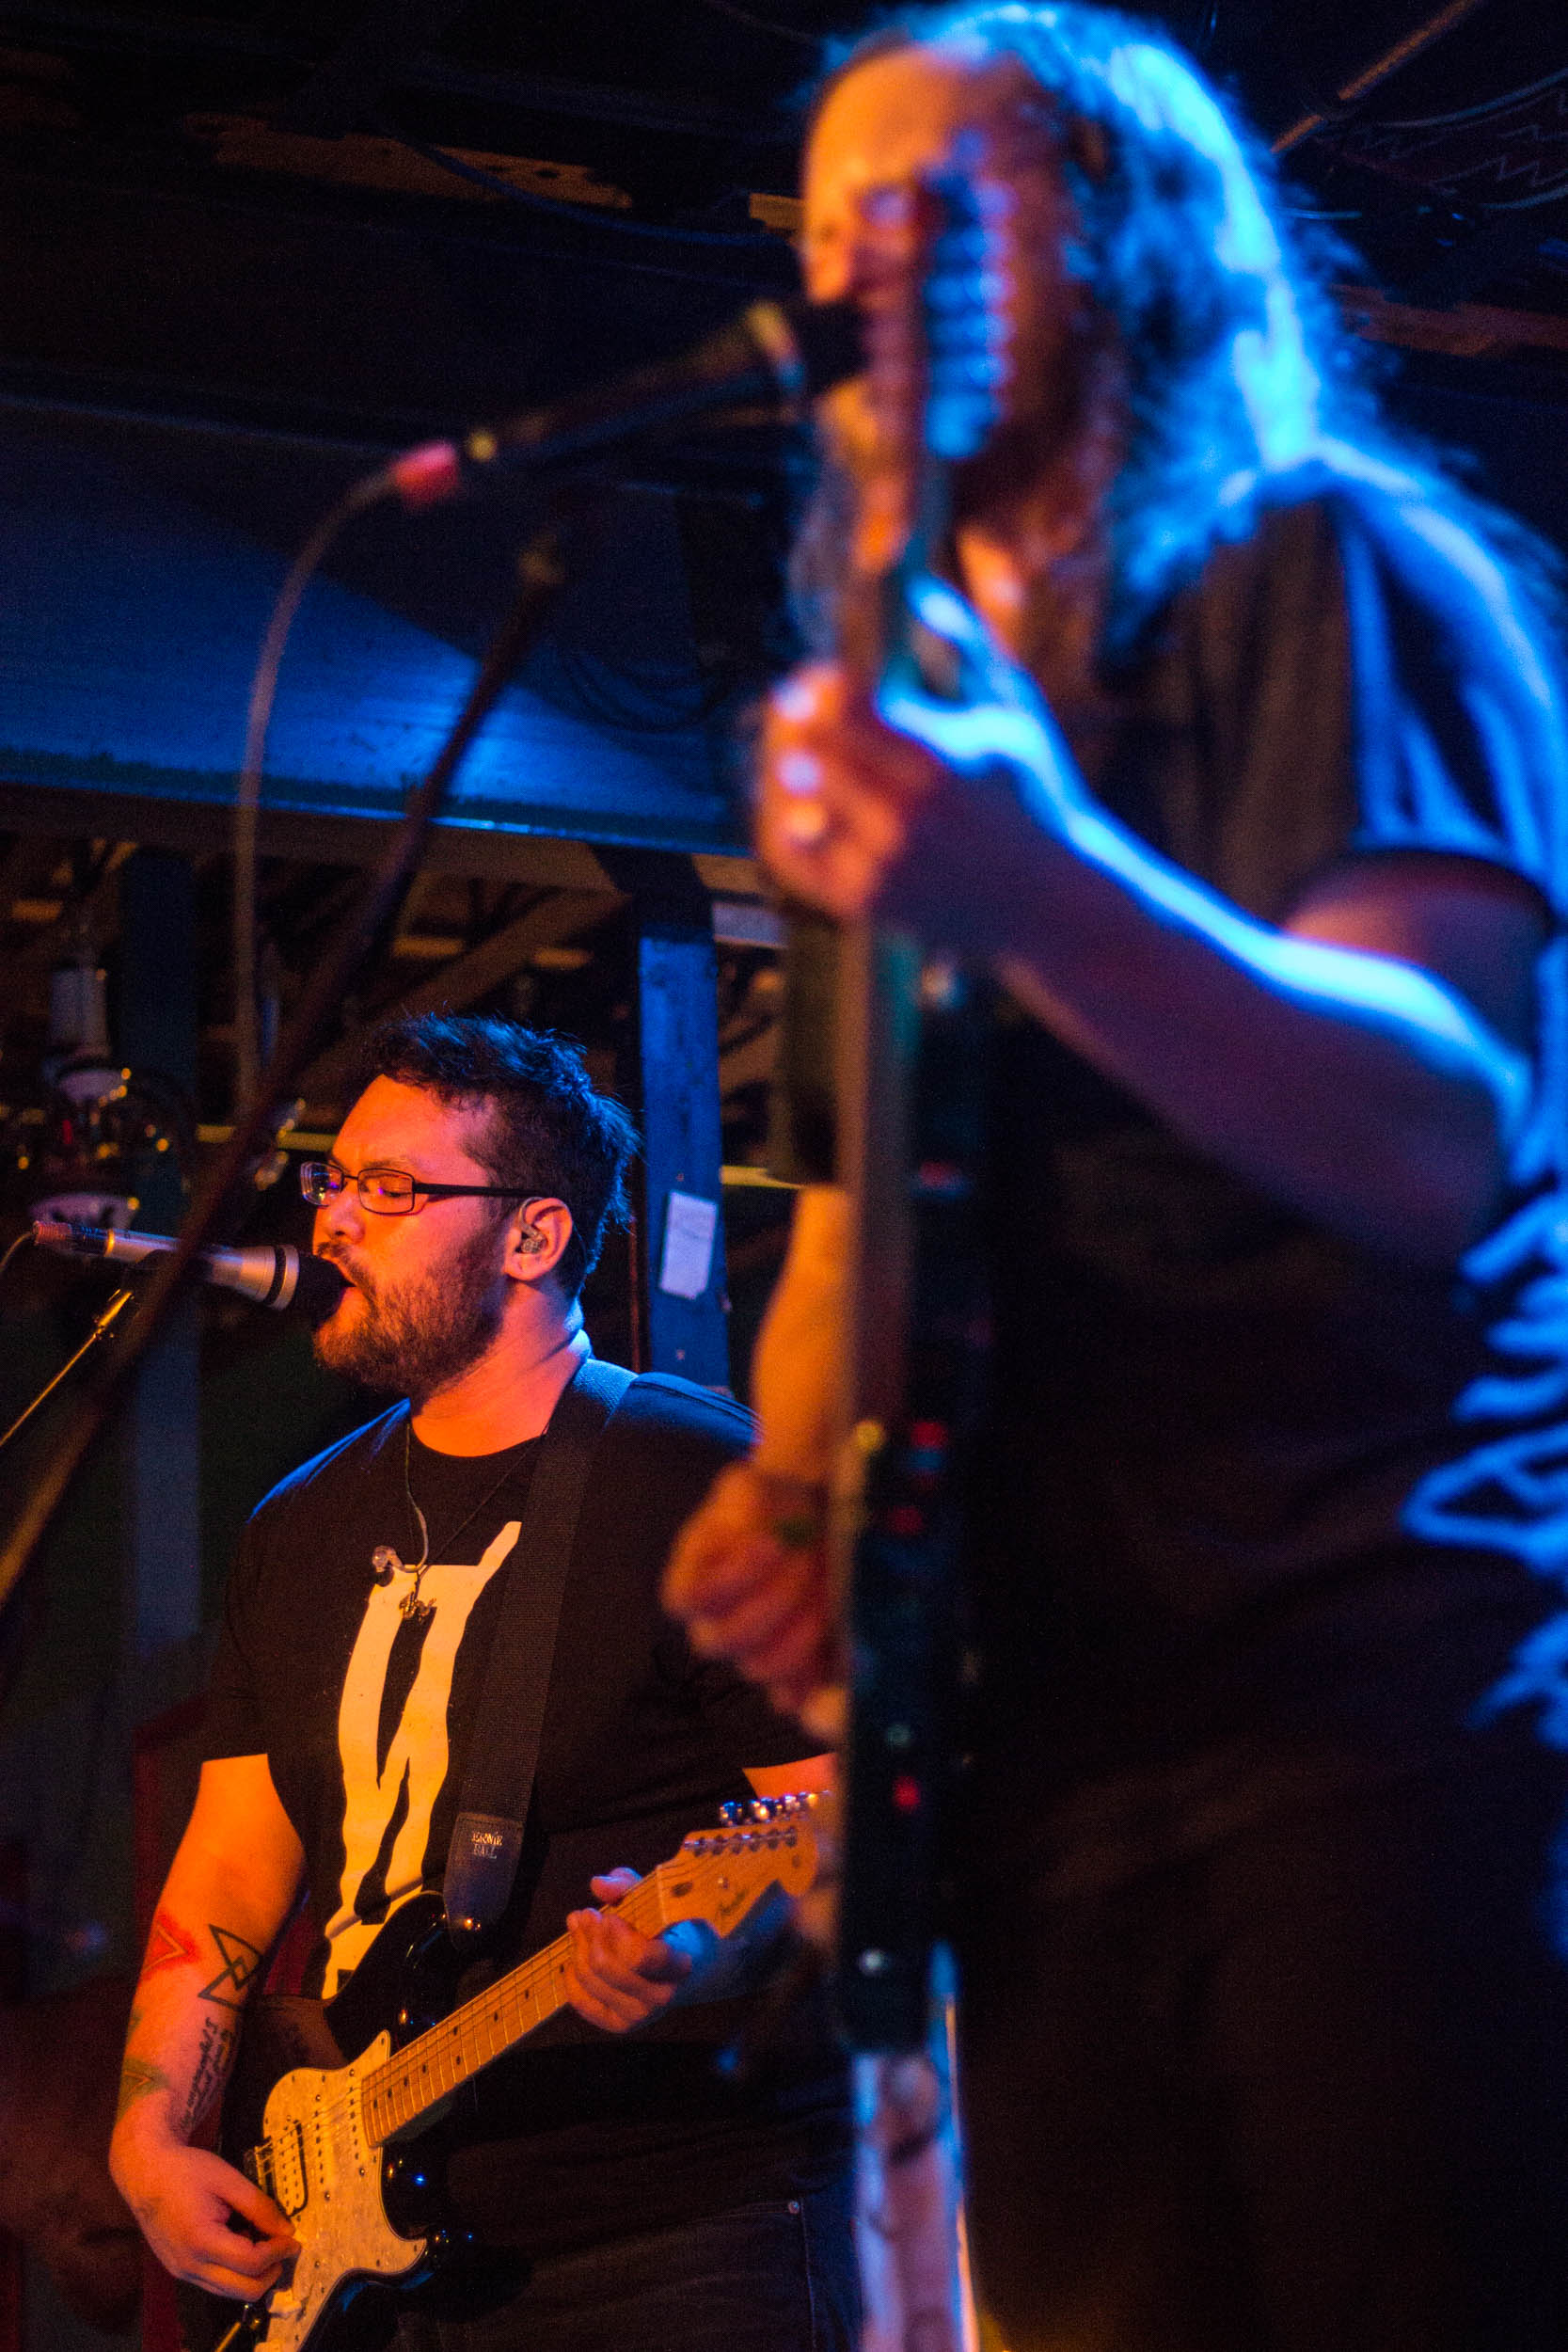 051317_Least of These at Dan's-13.jpg